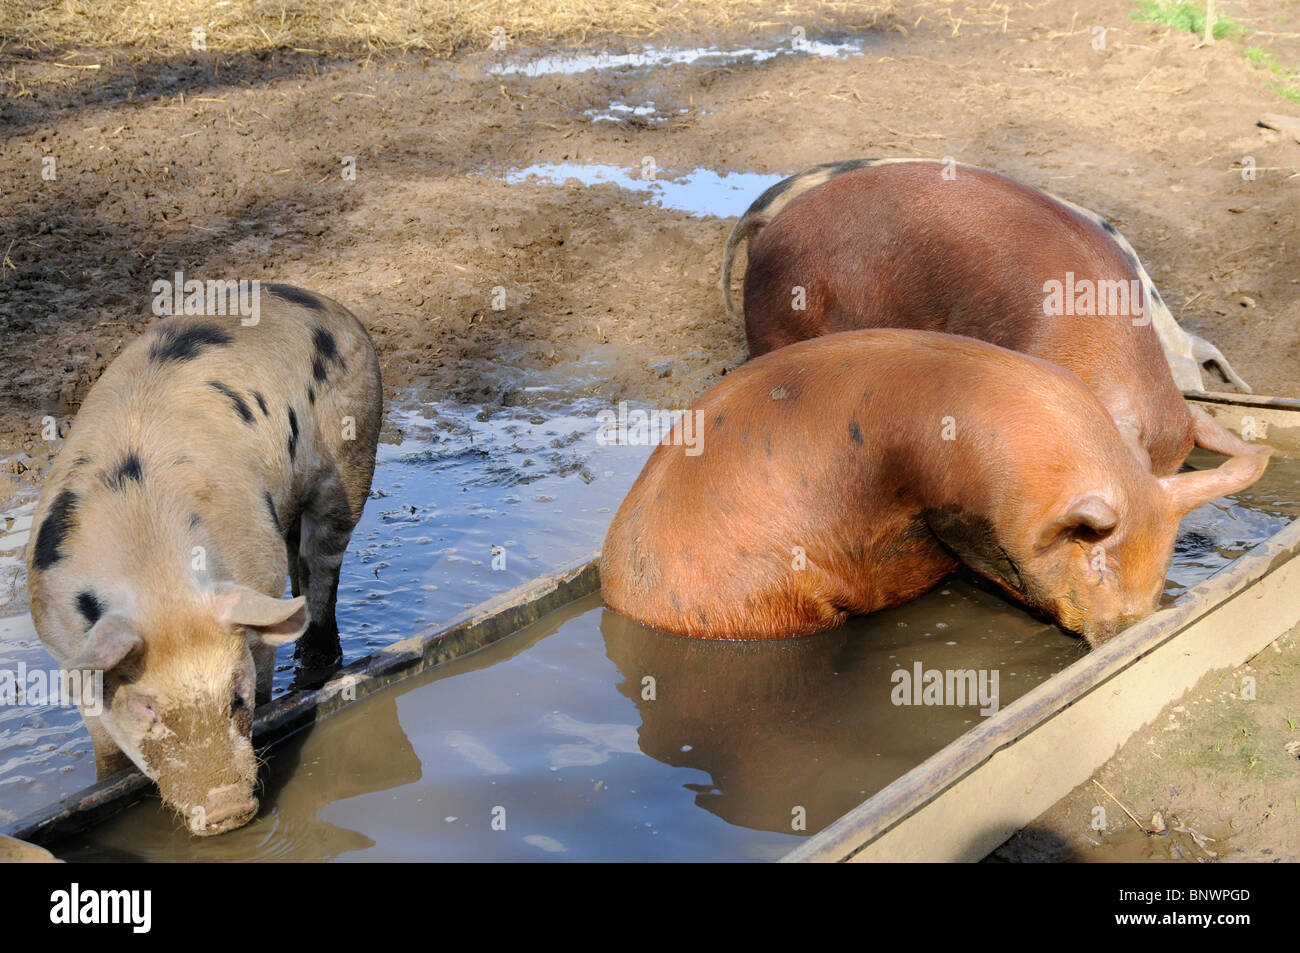 England, Lincolnshire, Cross bred pigs drinking water from water trough on farm - Stock Image